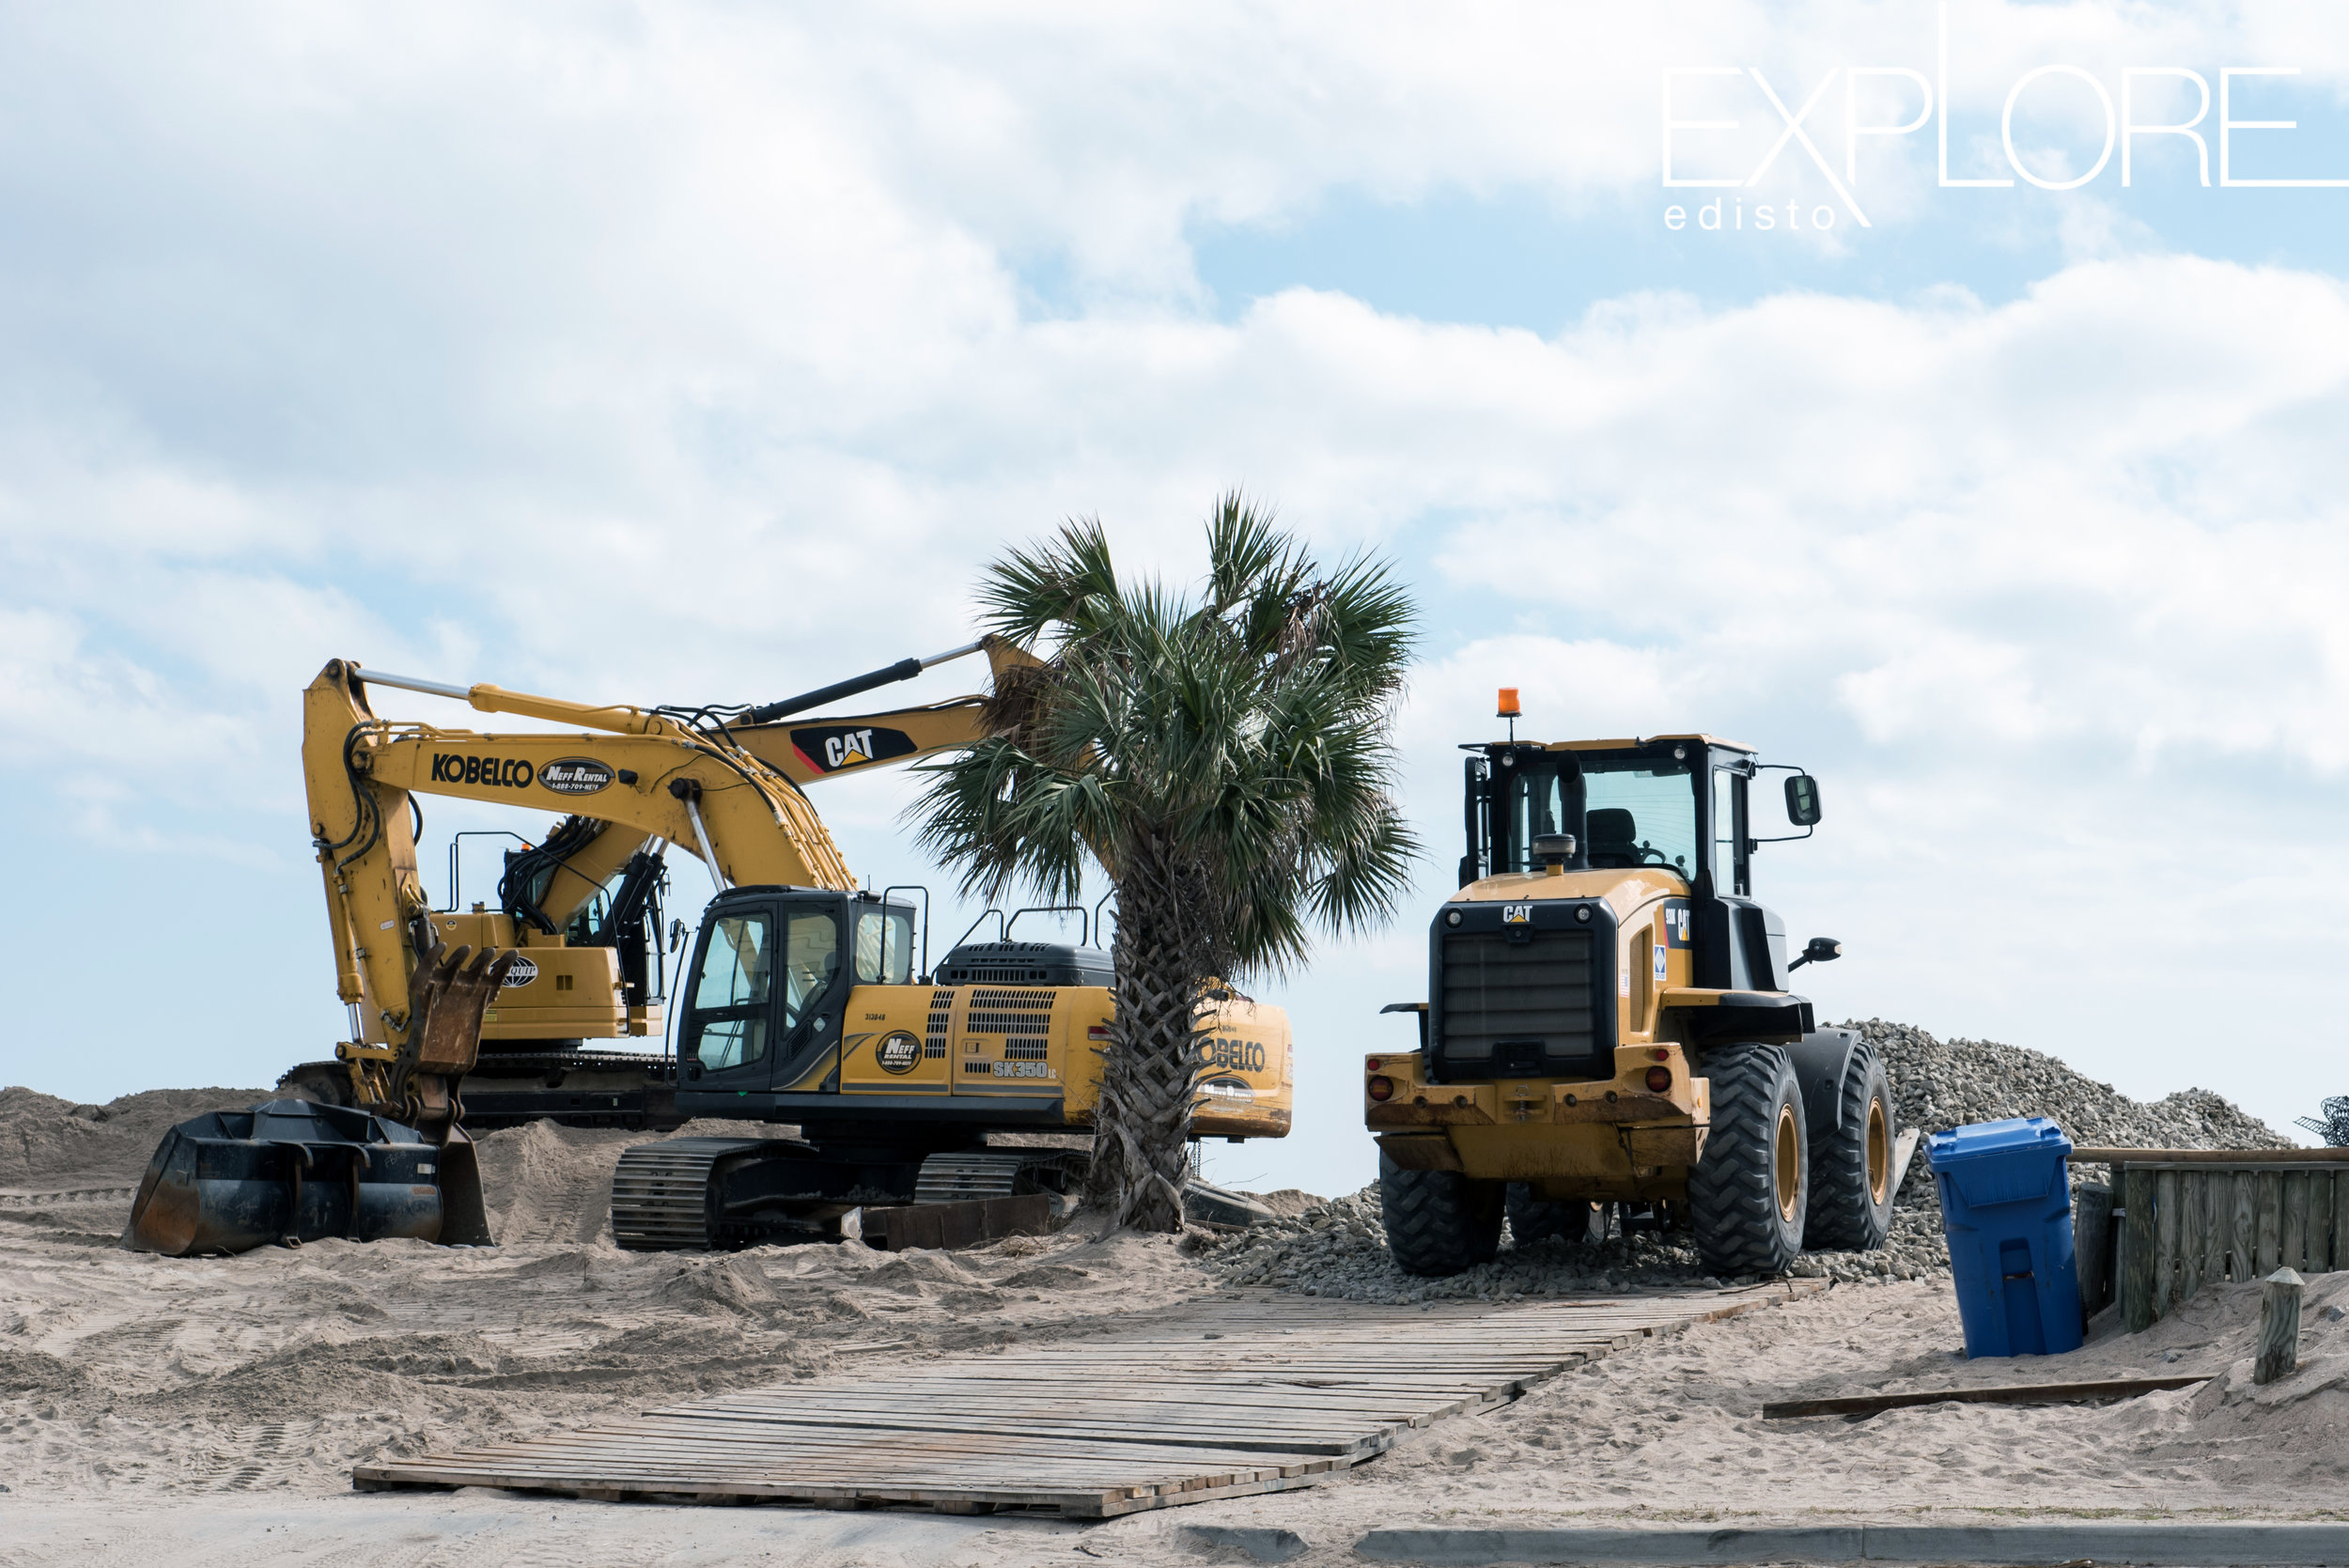 Tractors on beach next to a palmetto tree.